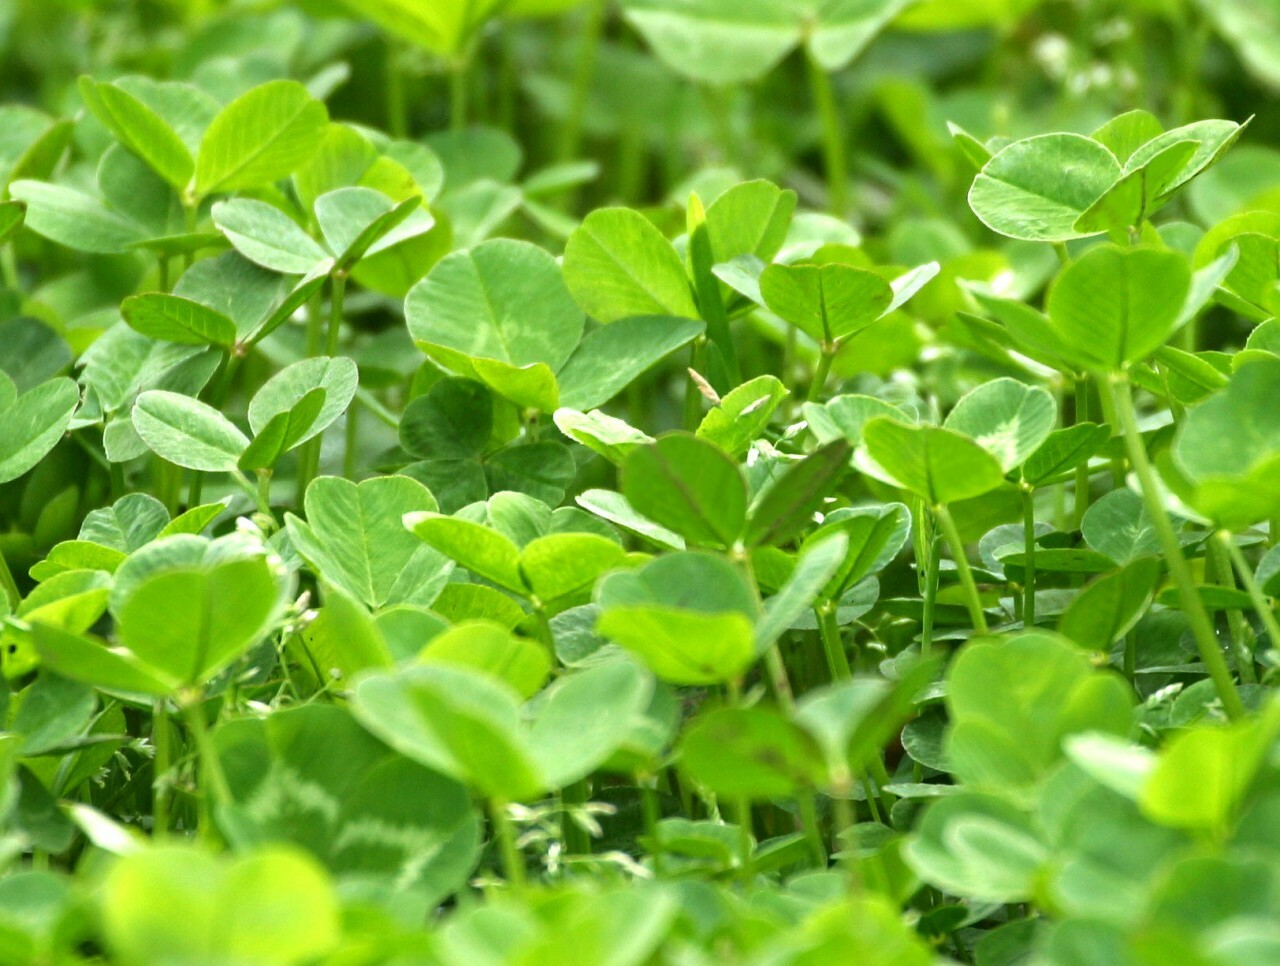 Clover close up